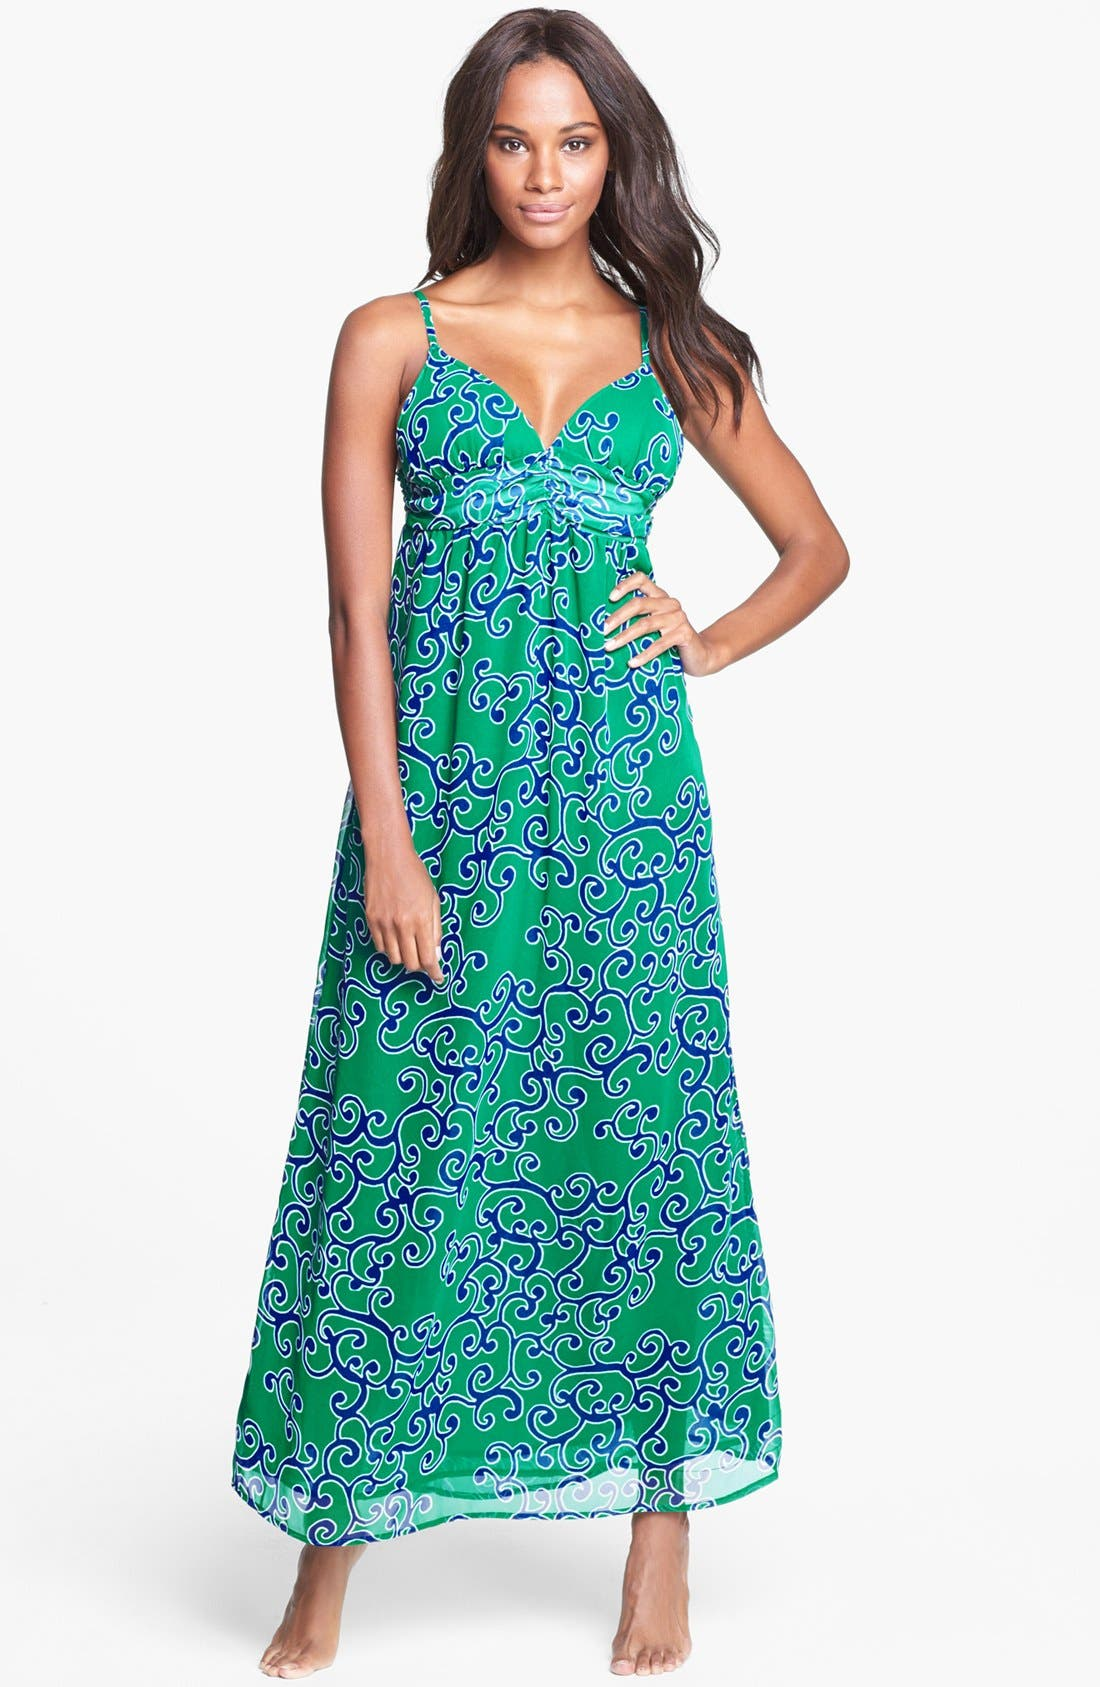 Alternate Image 1 Selected - Tommy Bahama 'Ocean Swirl' Cover-Up Maxi Dress